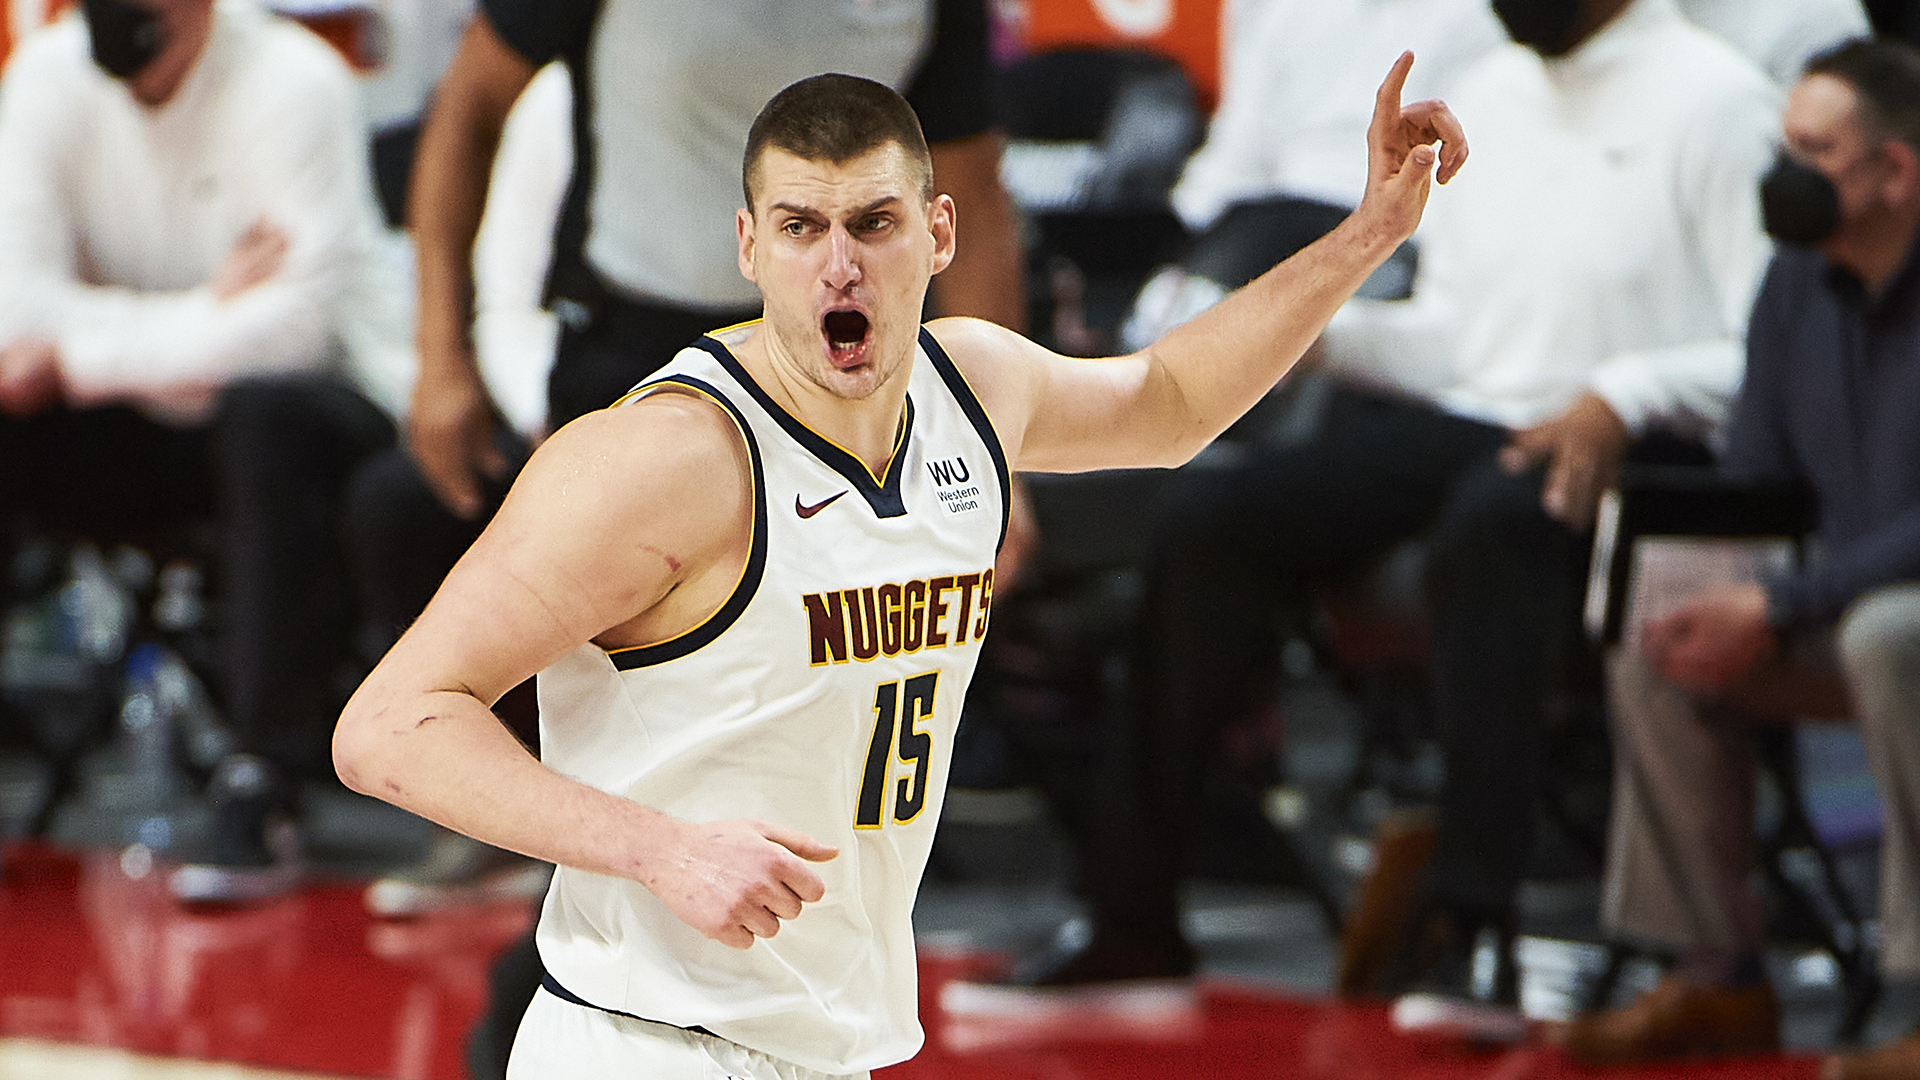 Nuggets use big run to take Game 6, advance to semifinals